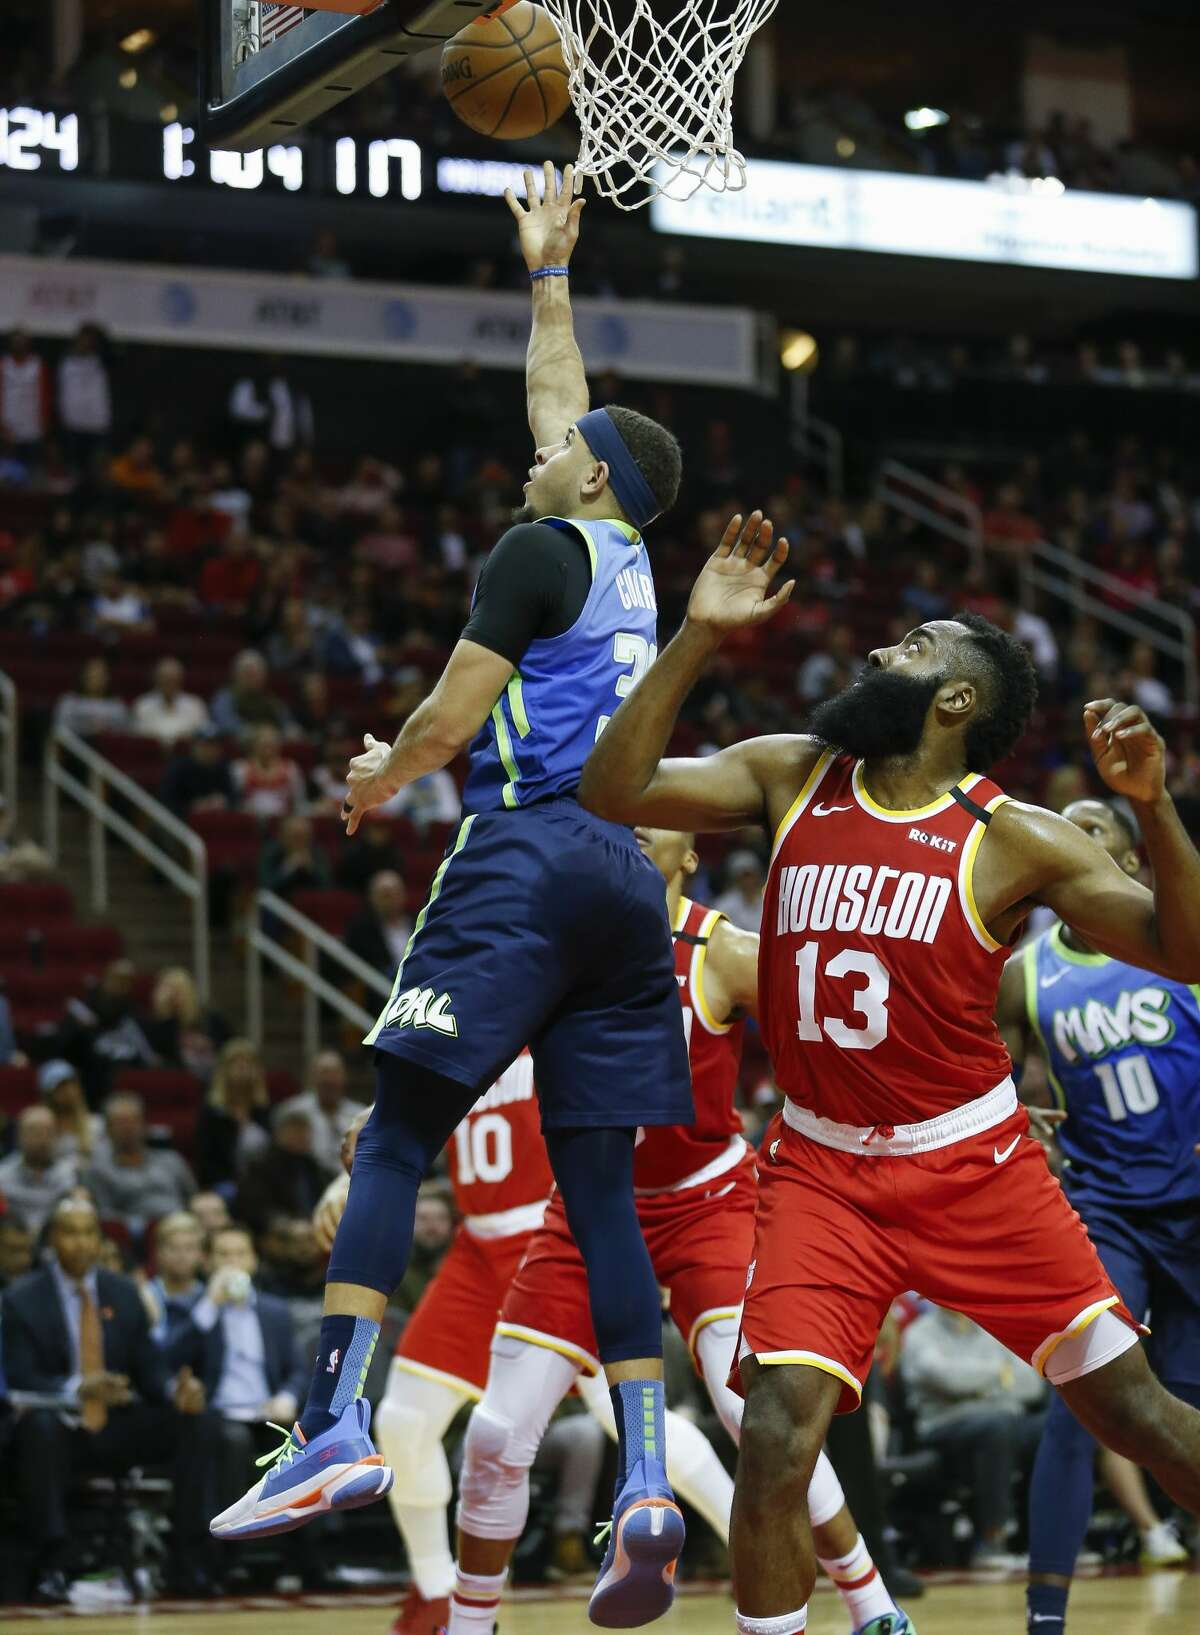 Dallas Mavericks guard Seth Curry (30) scores on layup against Houston Rockets guard James Harden (13) during the second half of an NBA game at the Toyota Center Friday, Jan. 31, 2020, in Houston. The Rockets won 128-121.